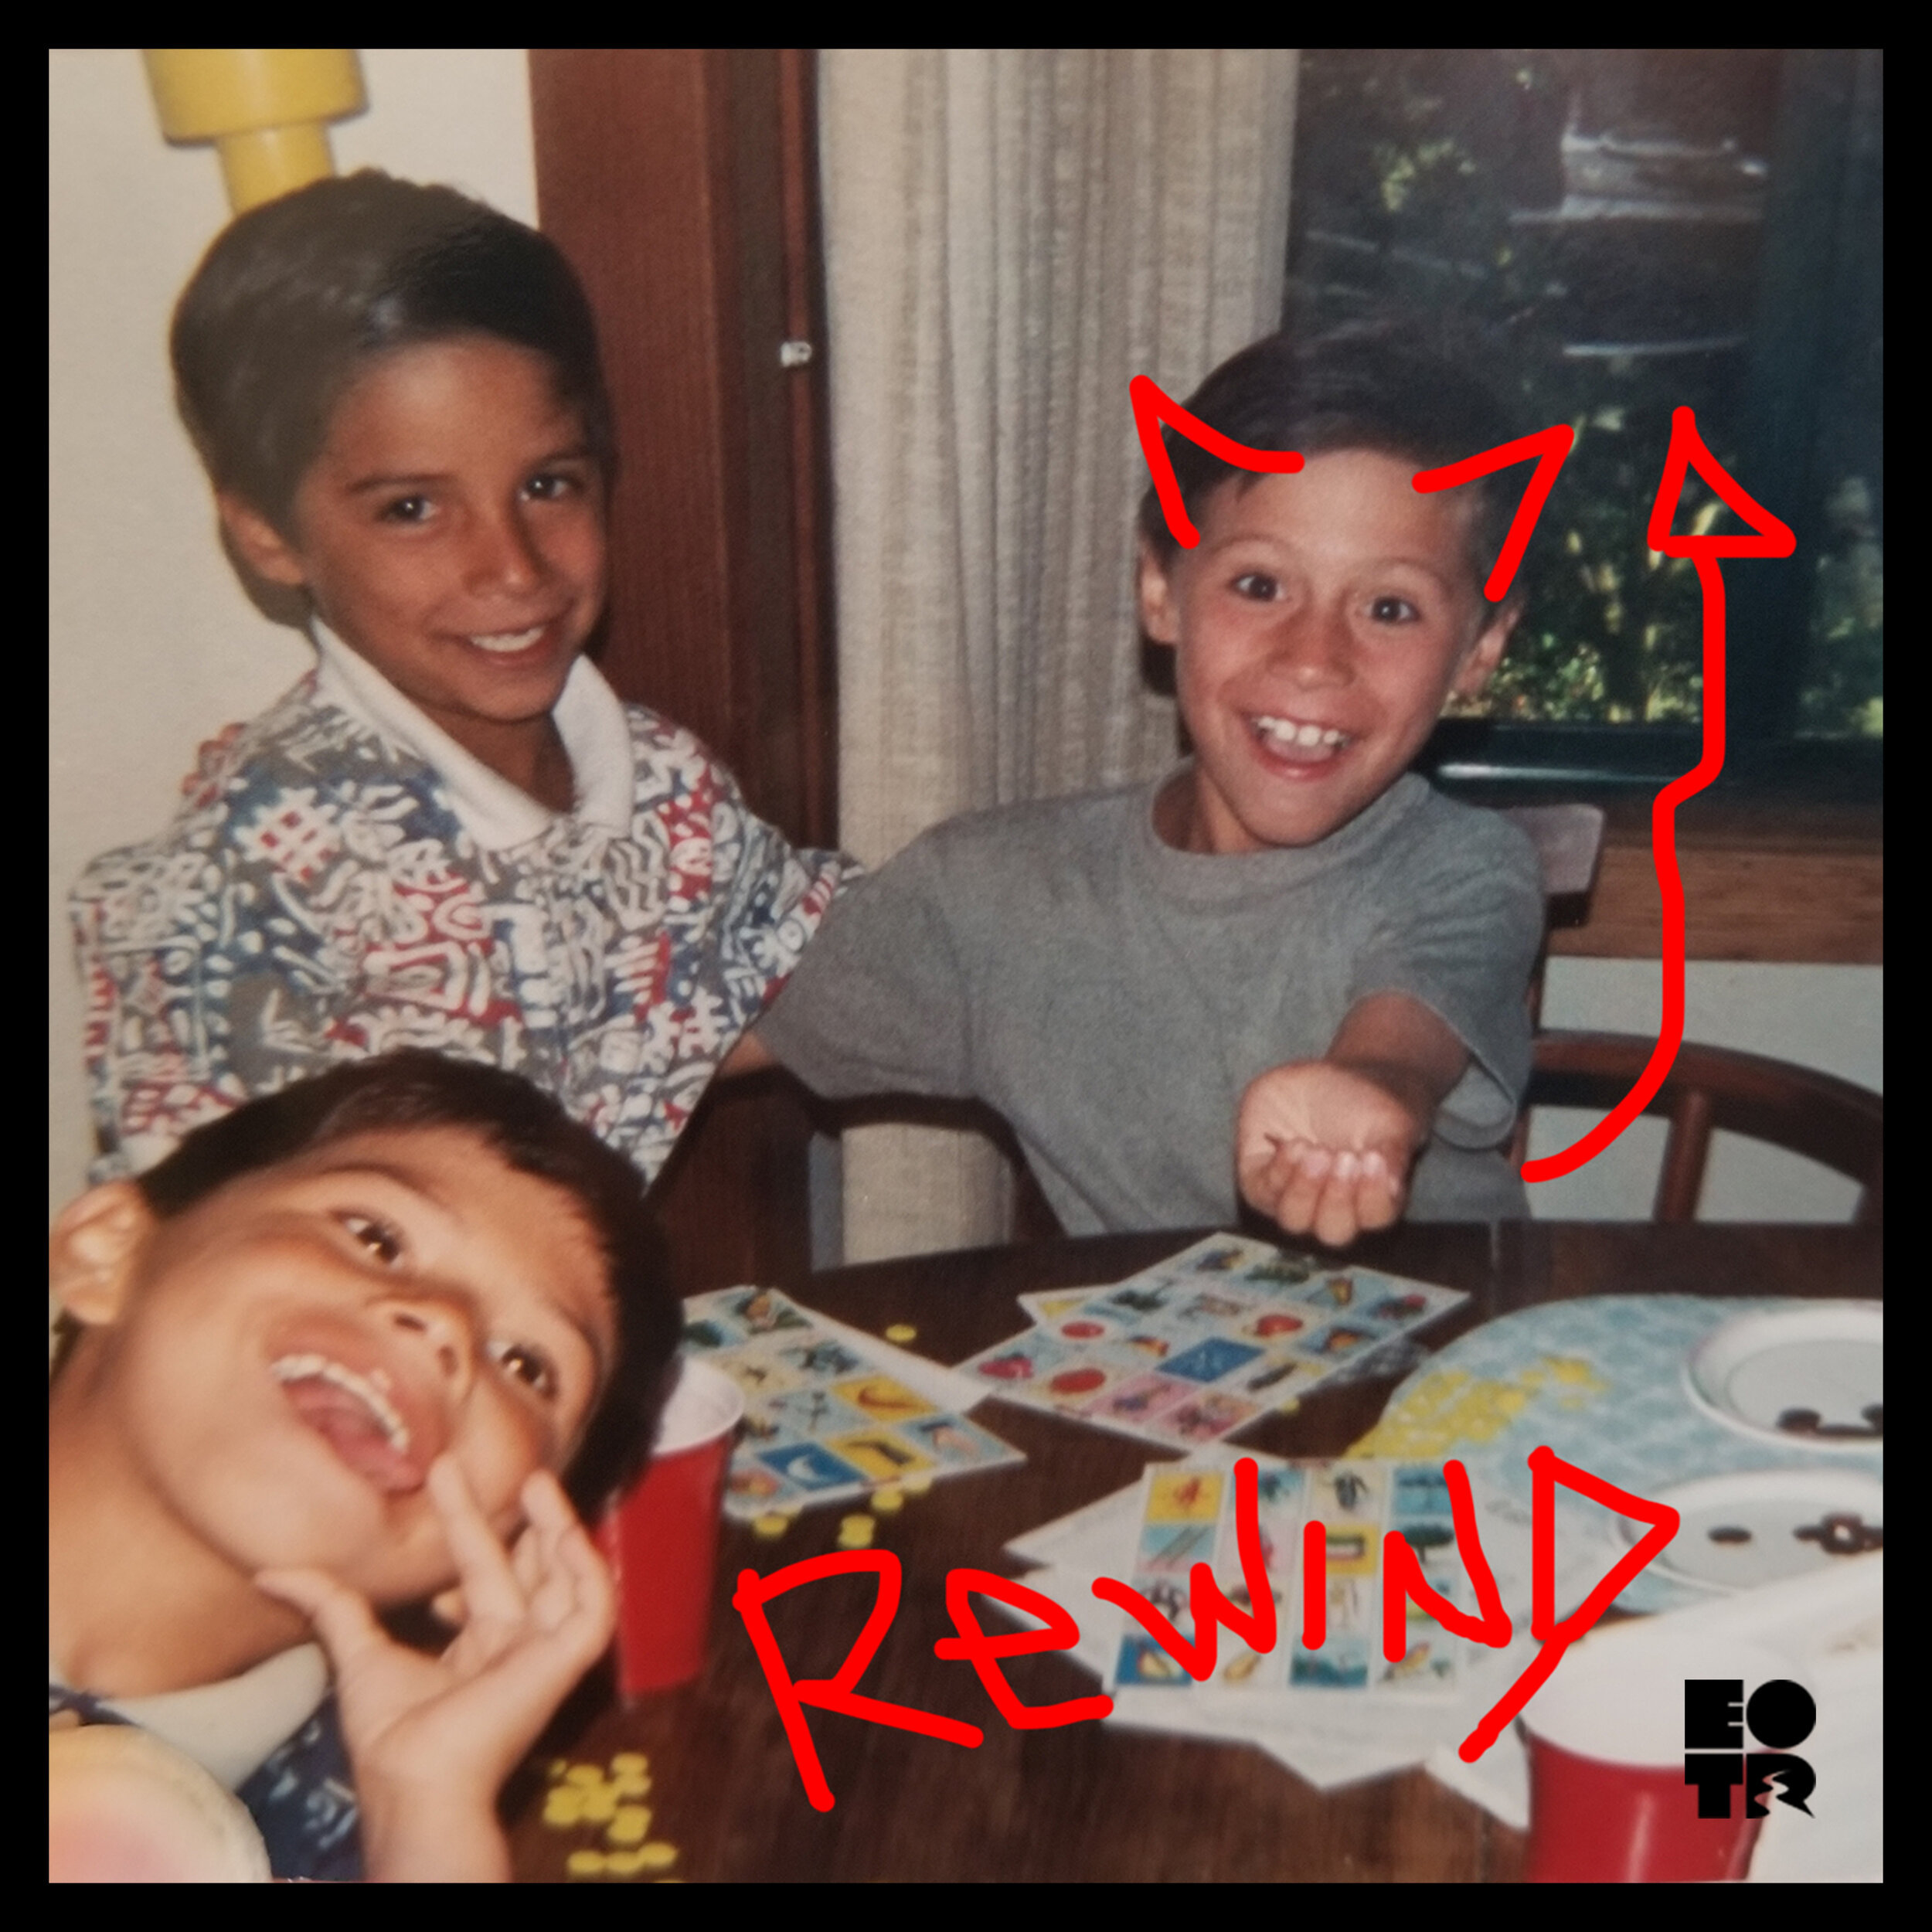 REWIND - Fresh off their EP Freeway Dreams, Viva Mescal & Lex Esquivel are back at it with a new single all about the bars and lyrics. Peep the latest music from Viva!